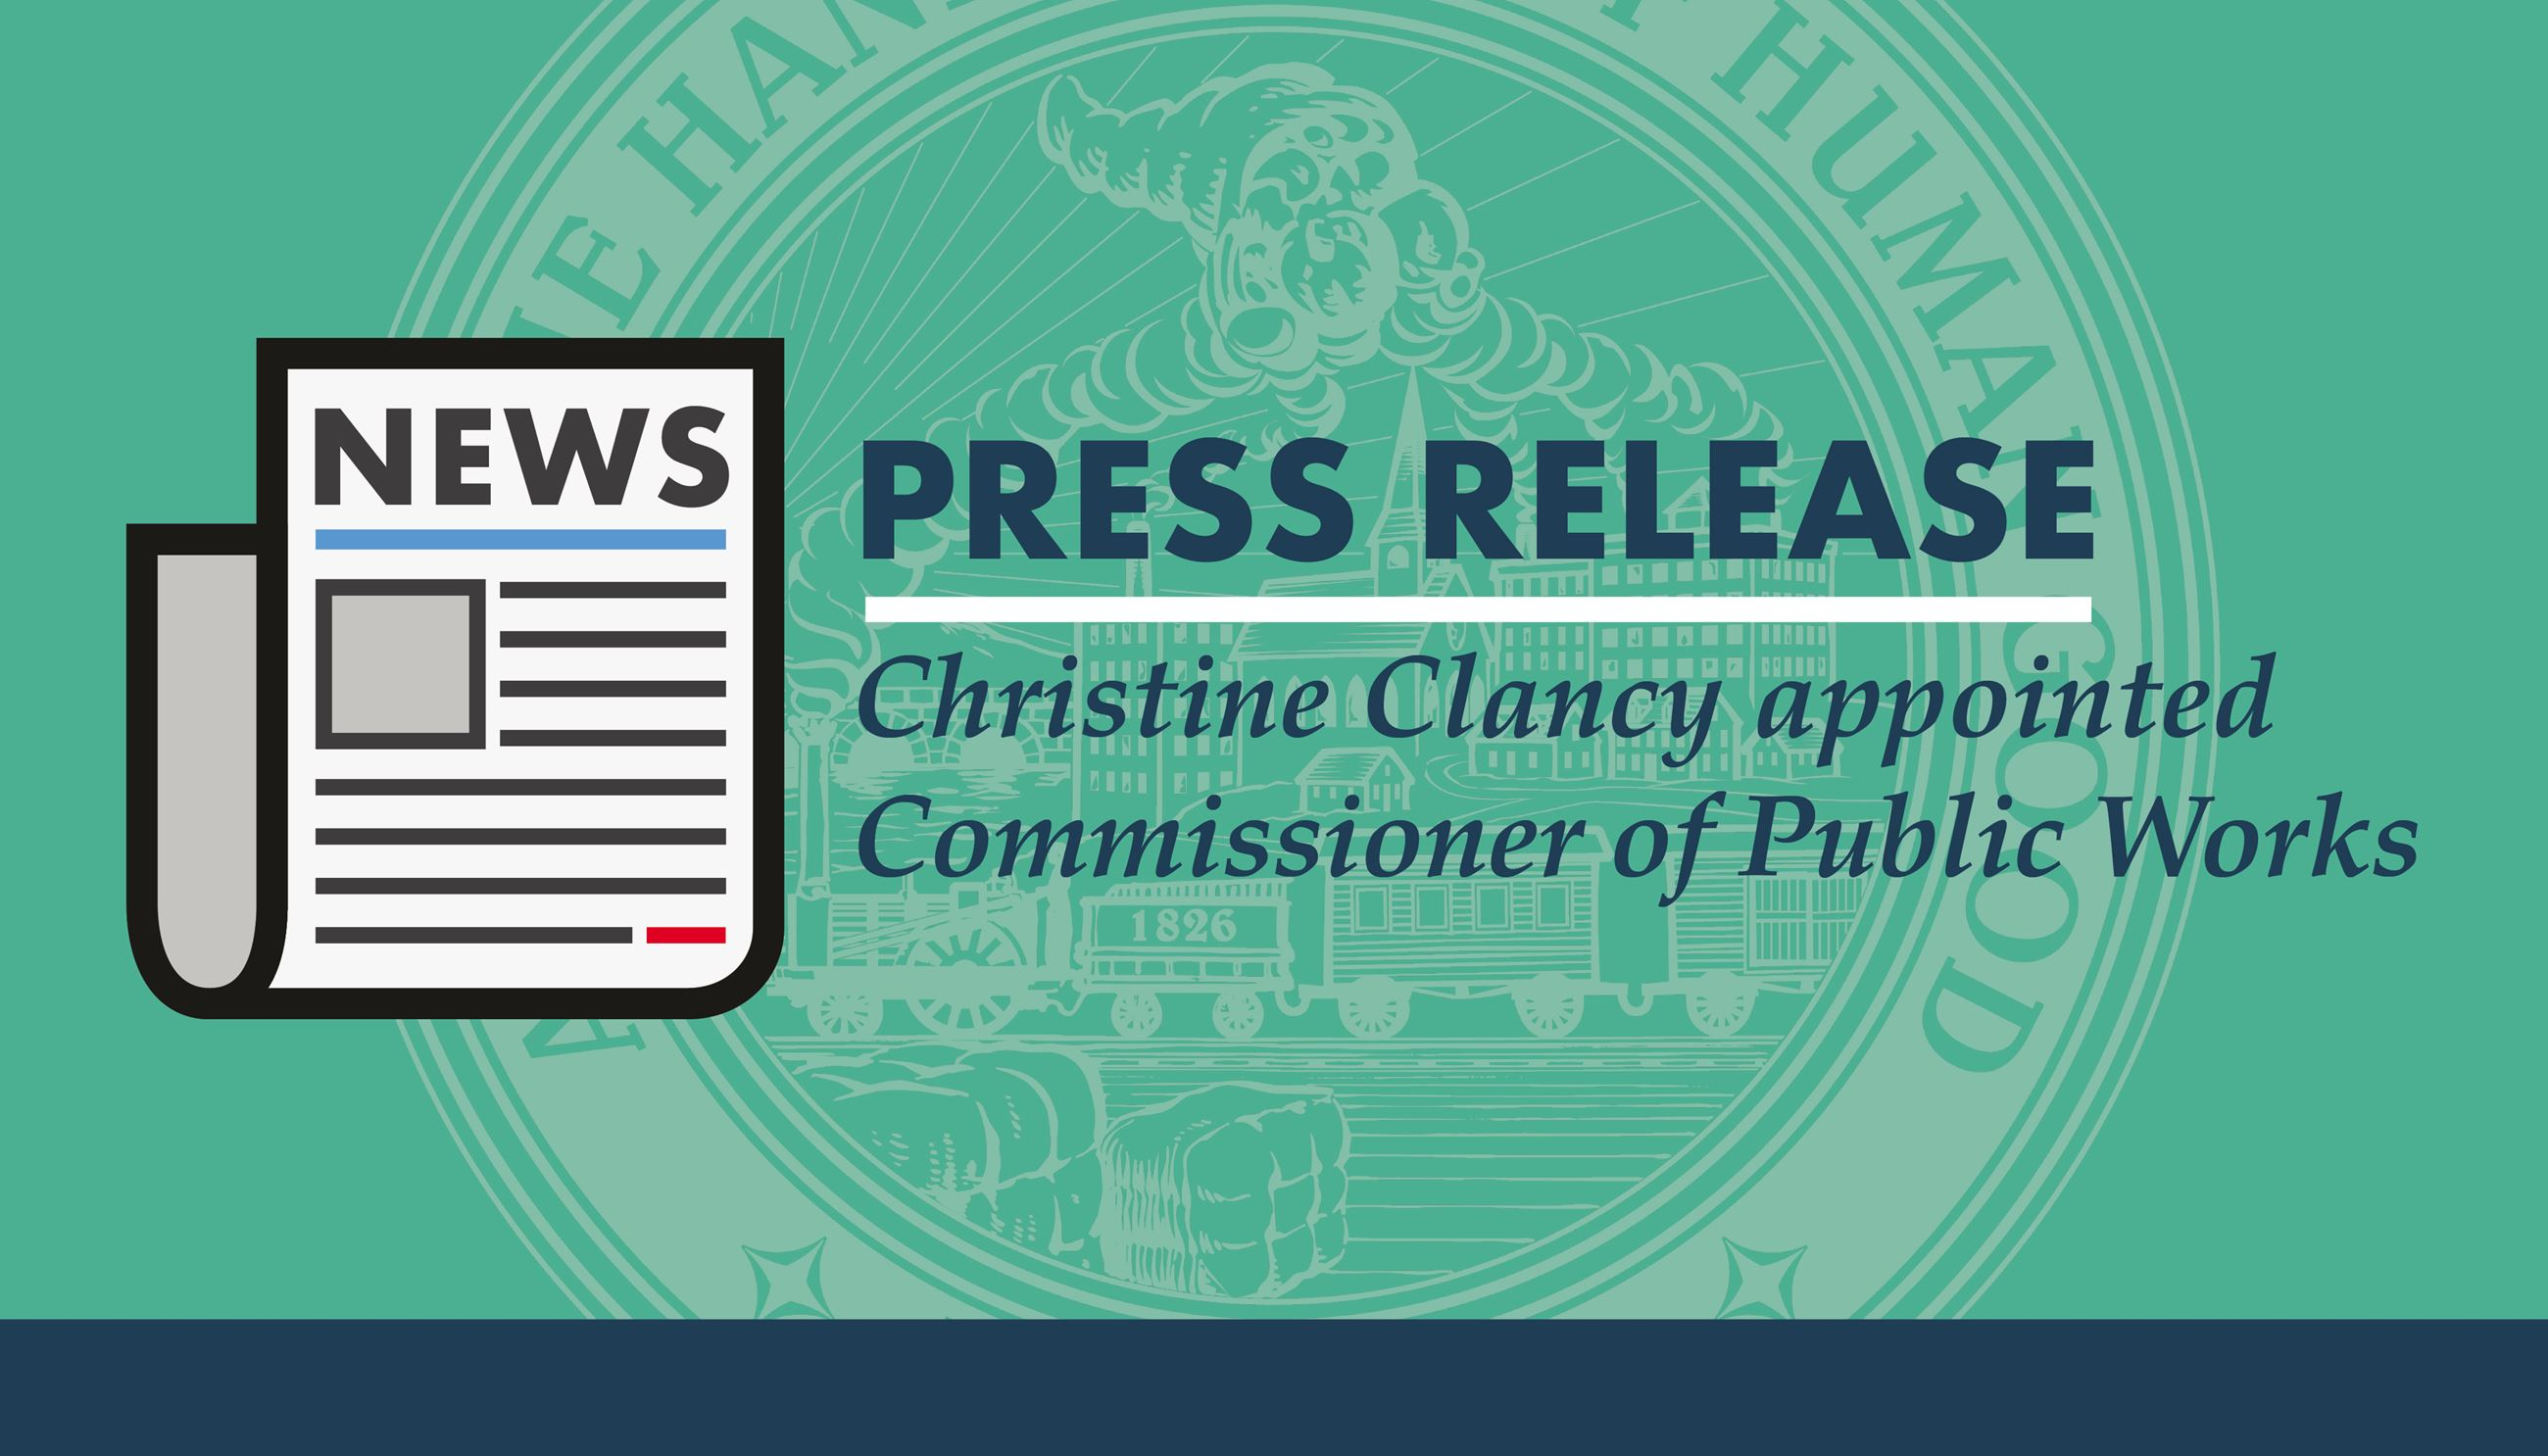 DPW Commissioner Press Release Graphic